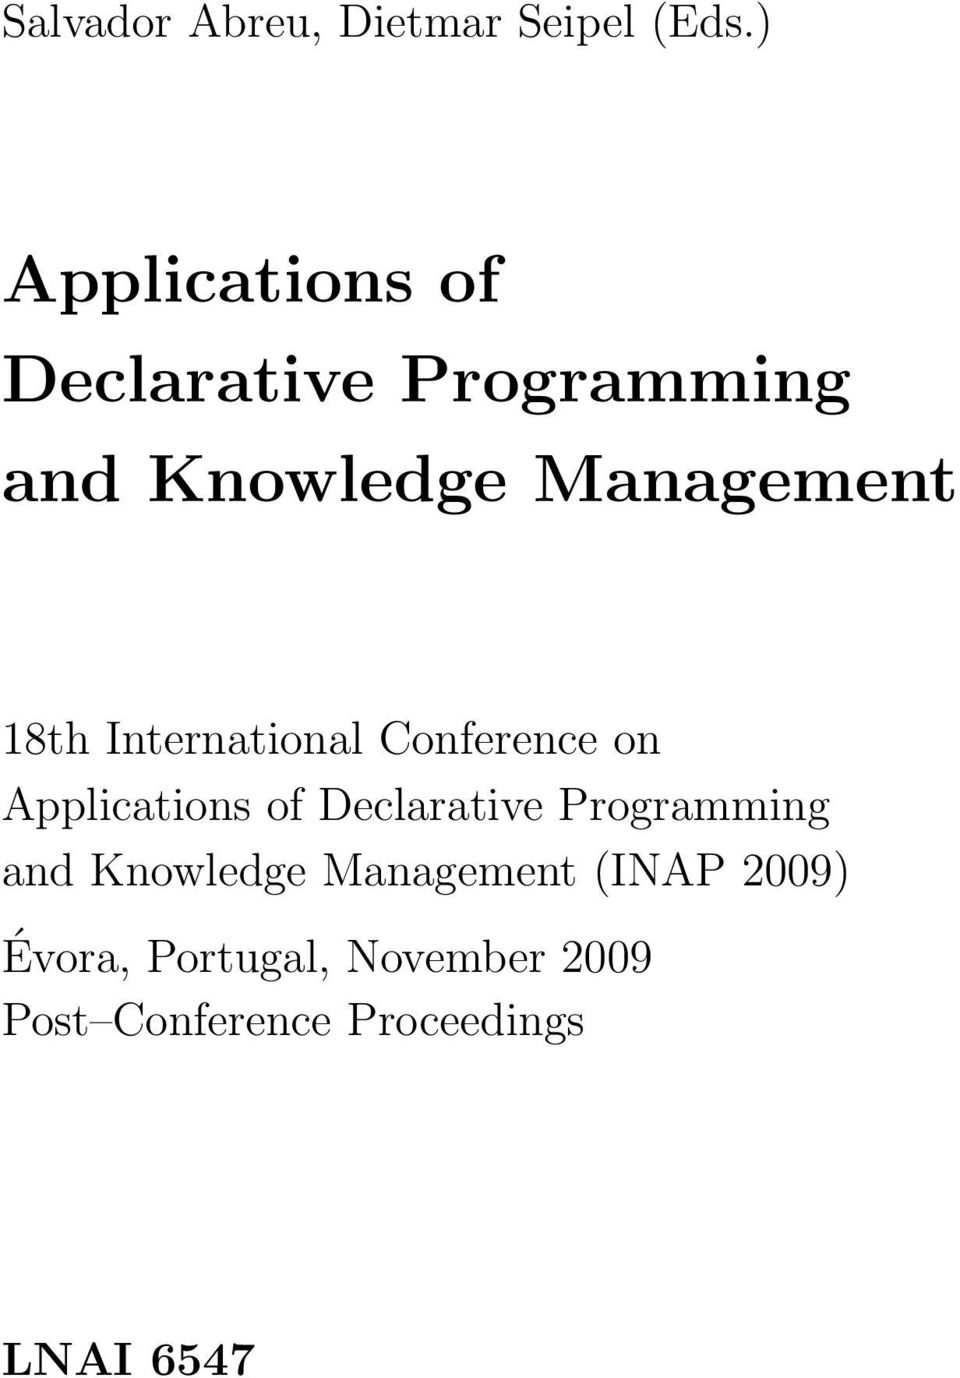 18th International Conference on Applications of Declarative